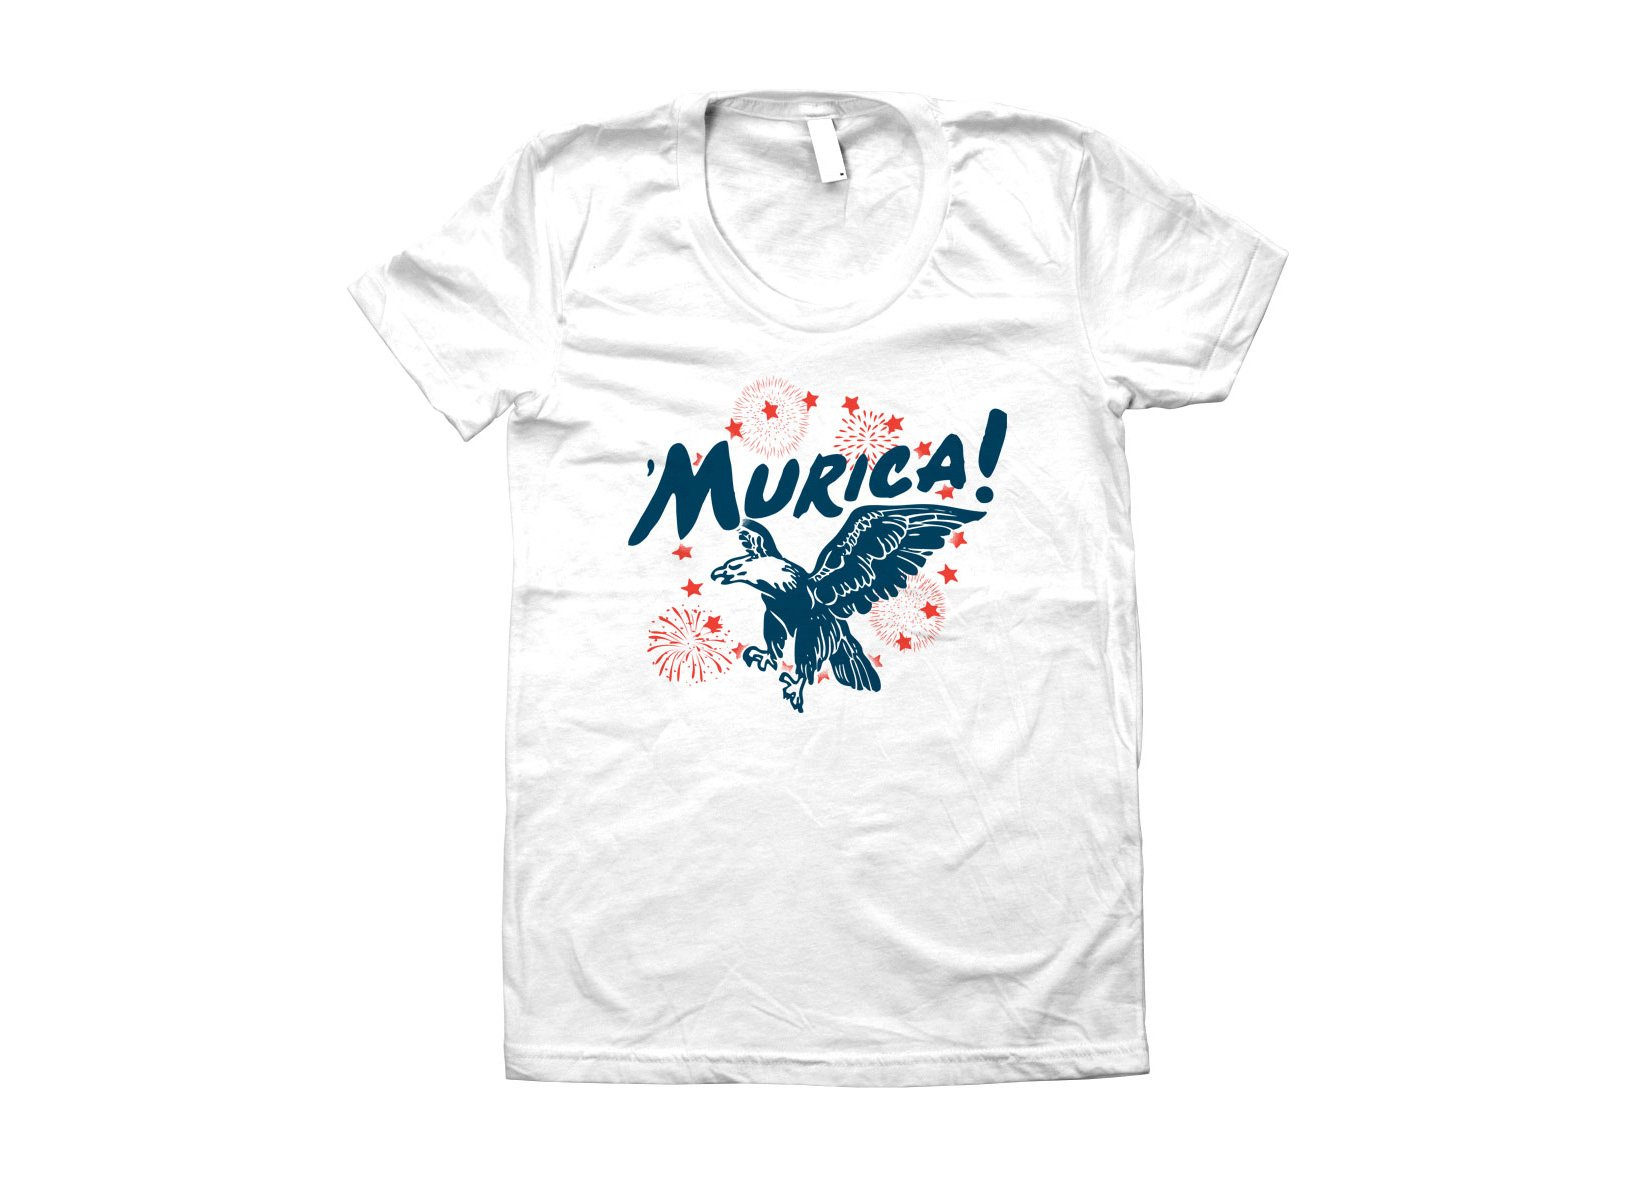 'Murica on Juniors T-Shirt